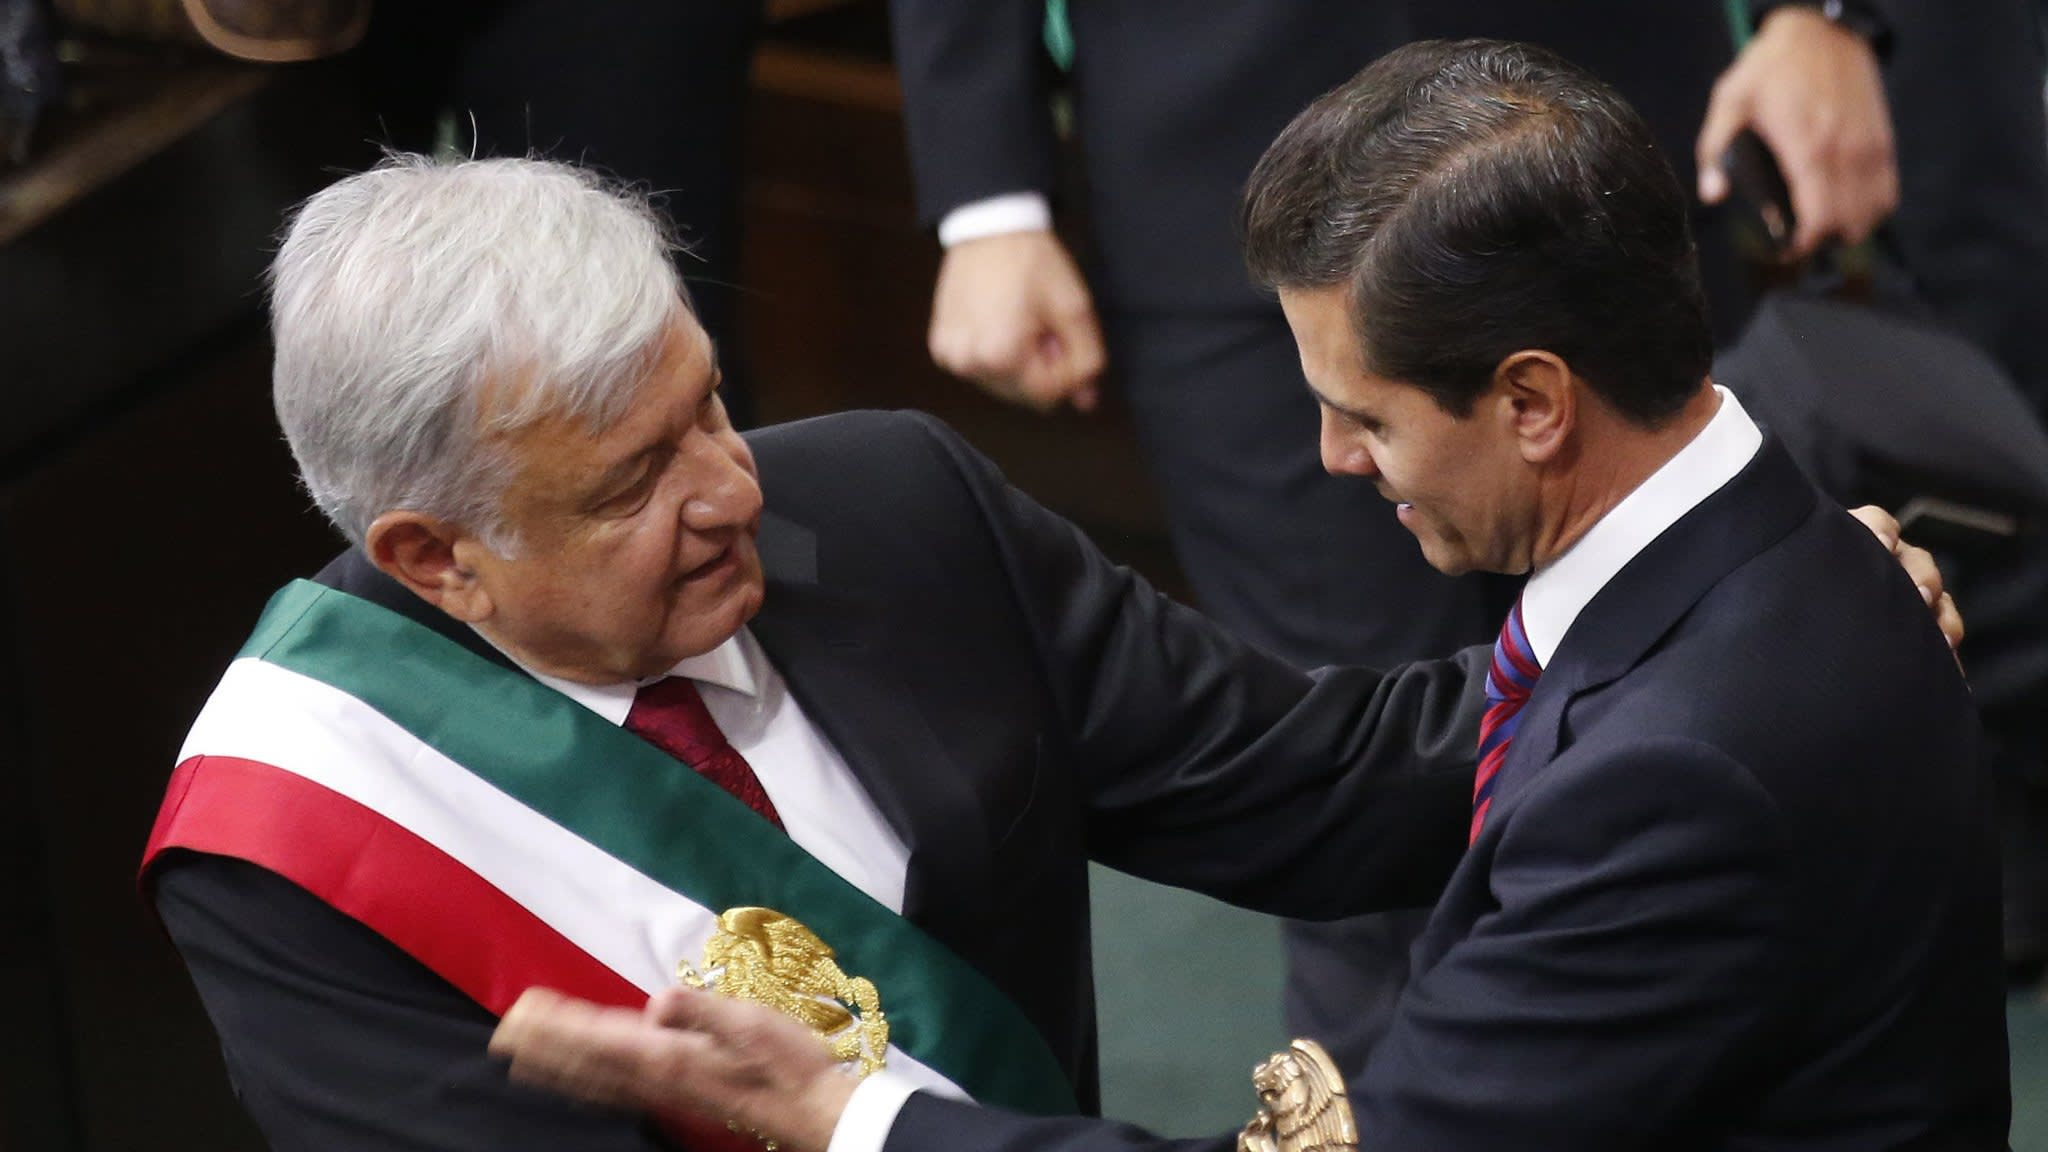 Mexico's López Obrador vows to end neo-liberalism in inauguration